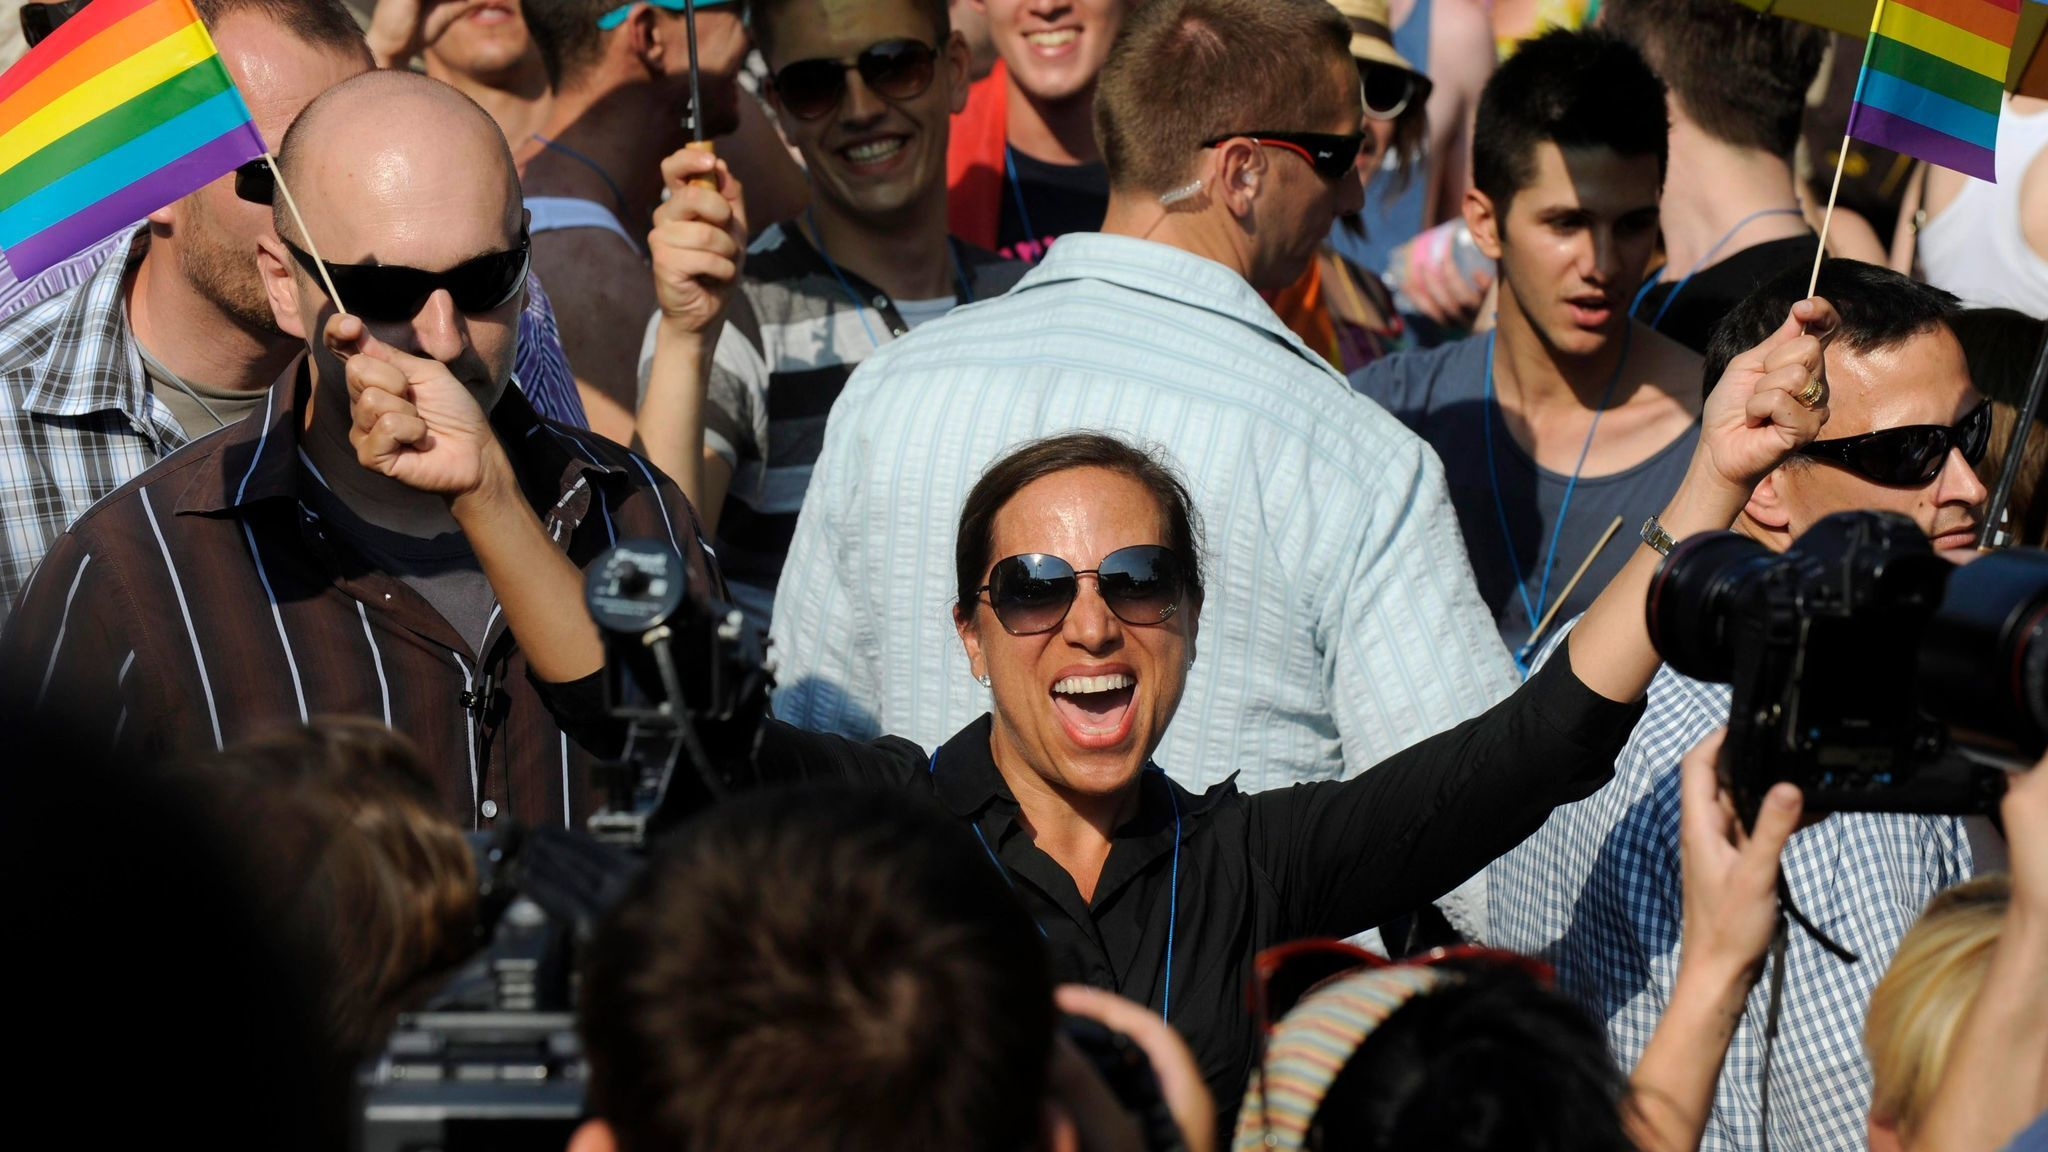 Eleni Tsakopoulos Kounalakis, then the U.S. ambassador to Hungary, waves rainbow flags at a gay pride march in Budapest in 2012. She's now running for lieutenant governor in California.